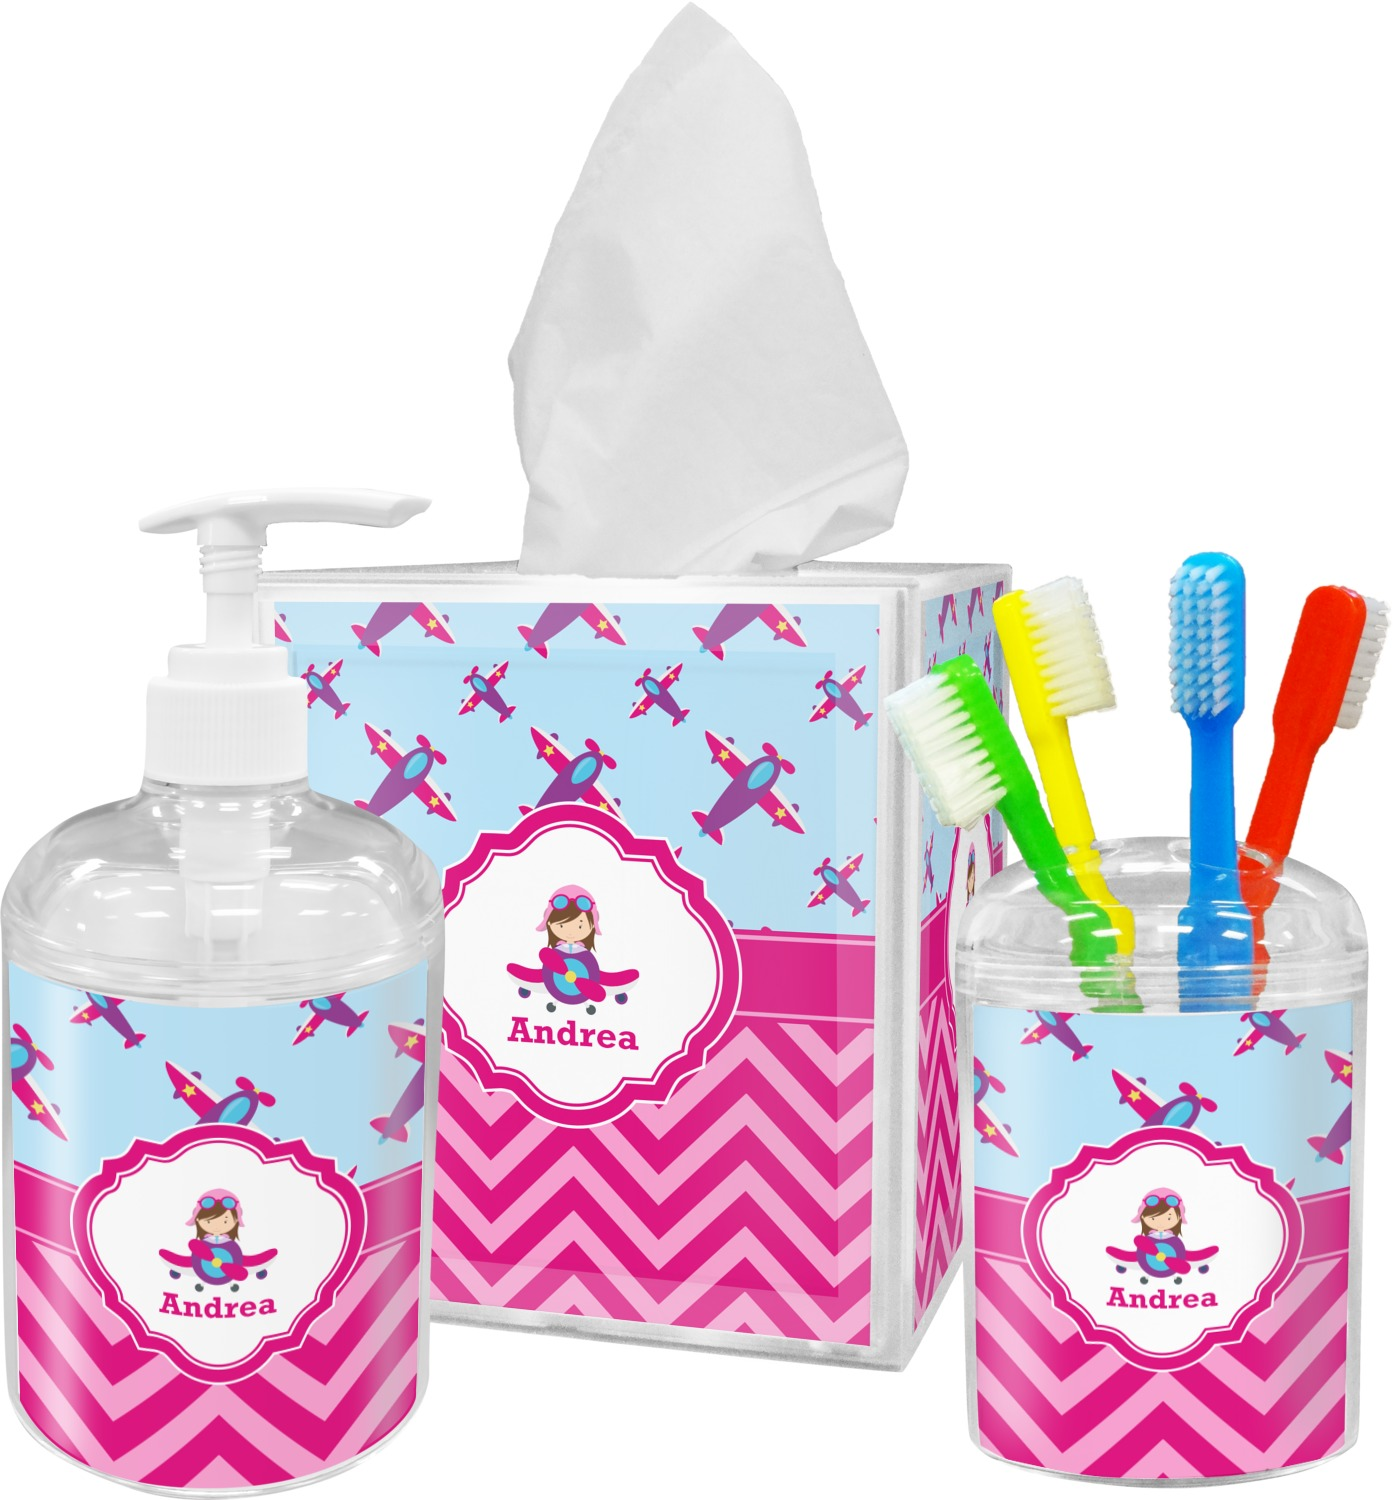 Airplane Theme   For Girls Bathroom Accessories Set (Personalized)